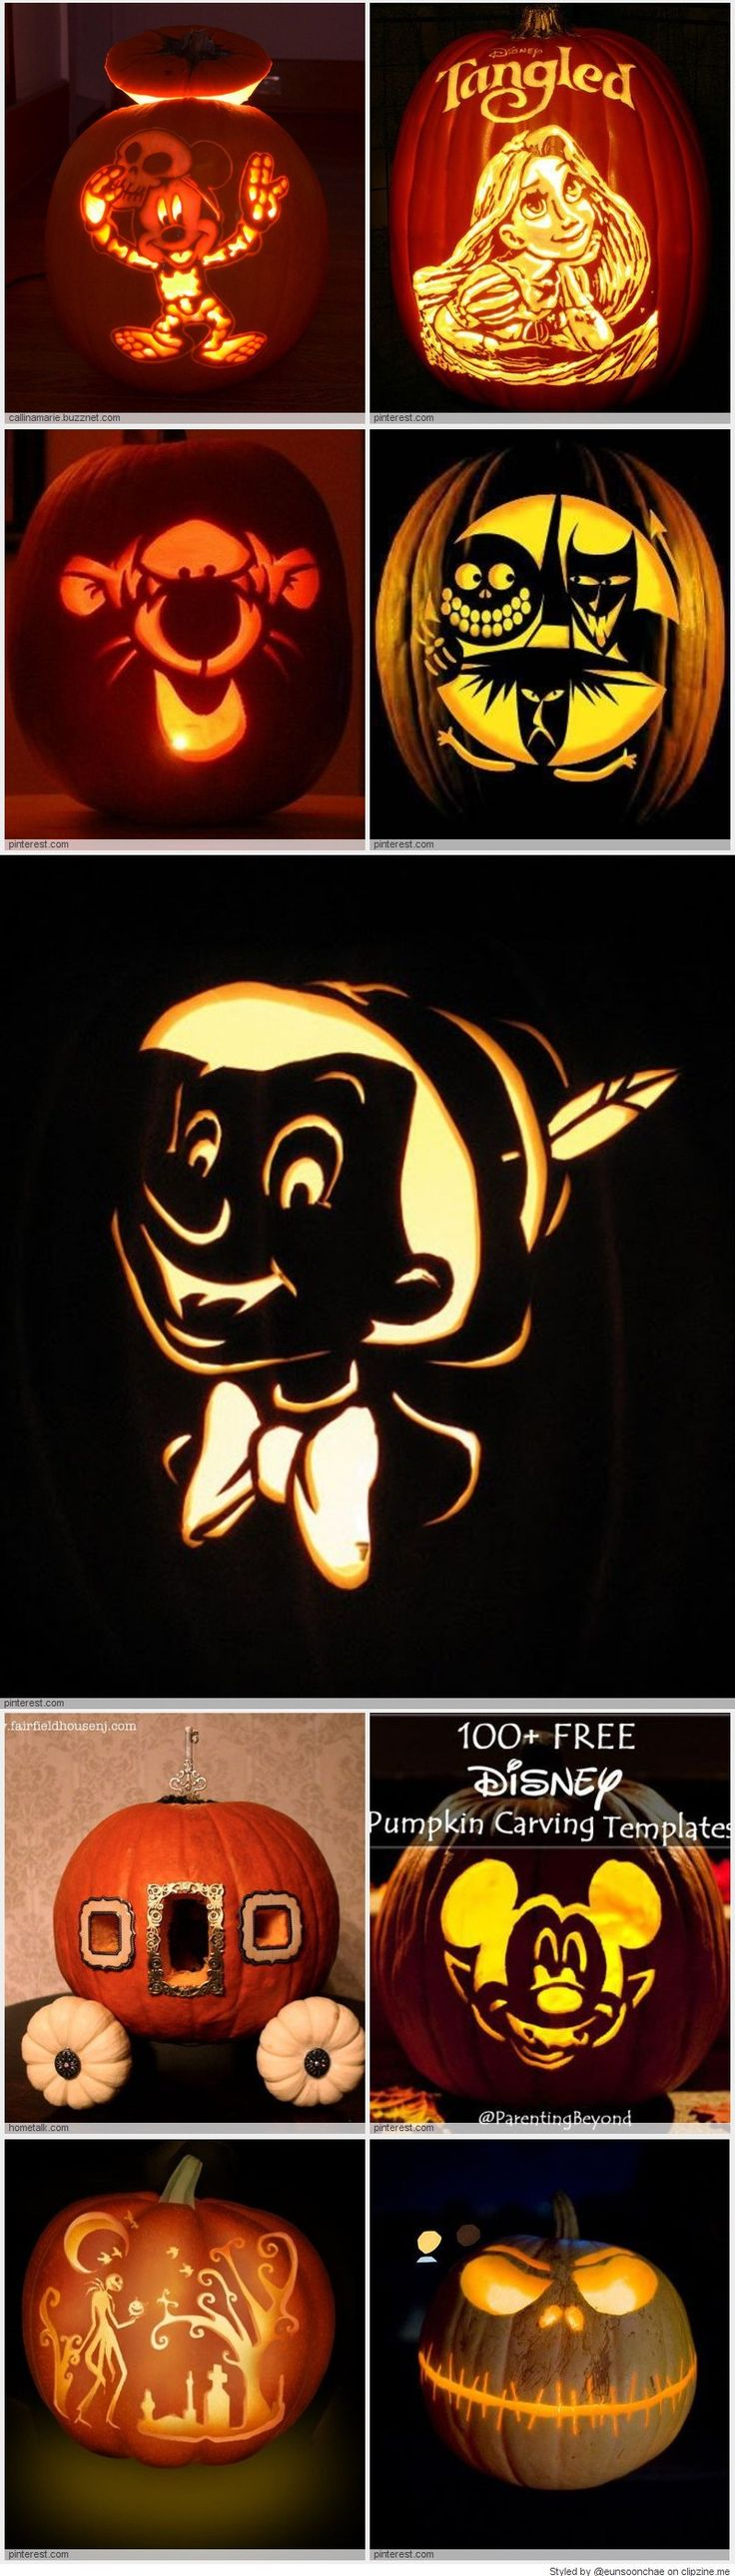 Disney Pumpkin Carving Ideas